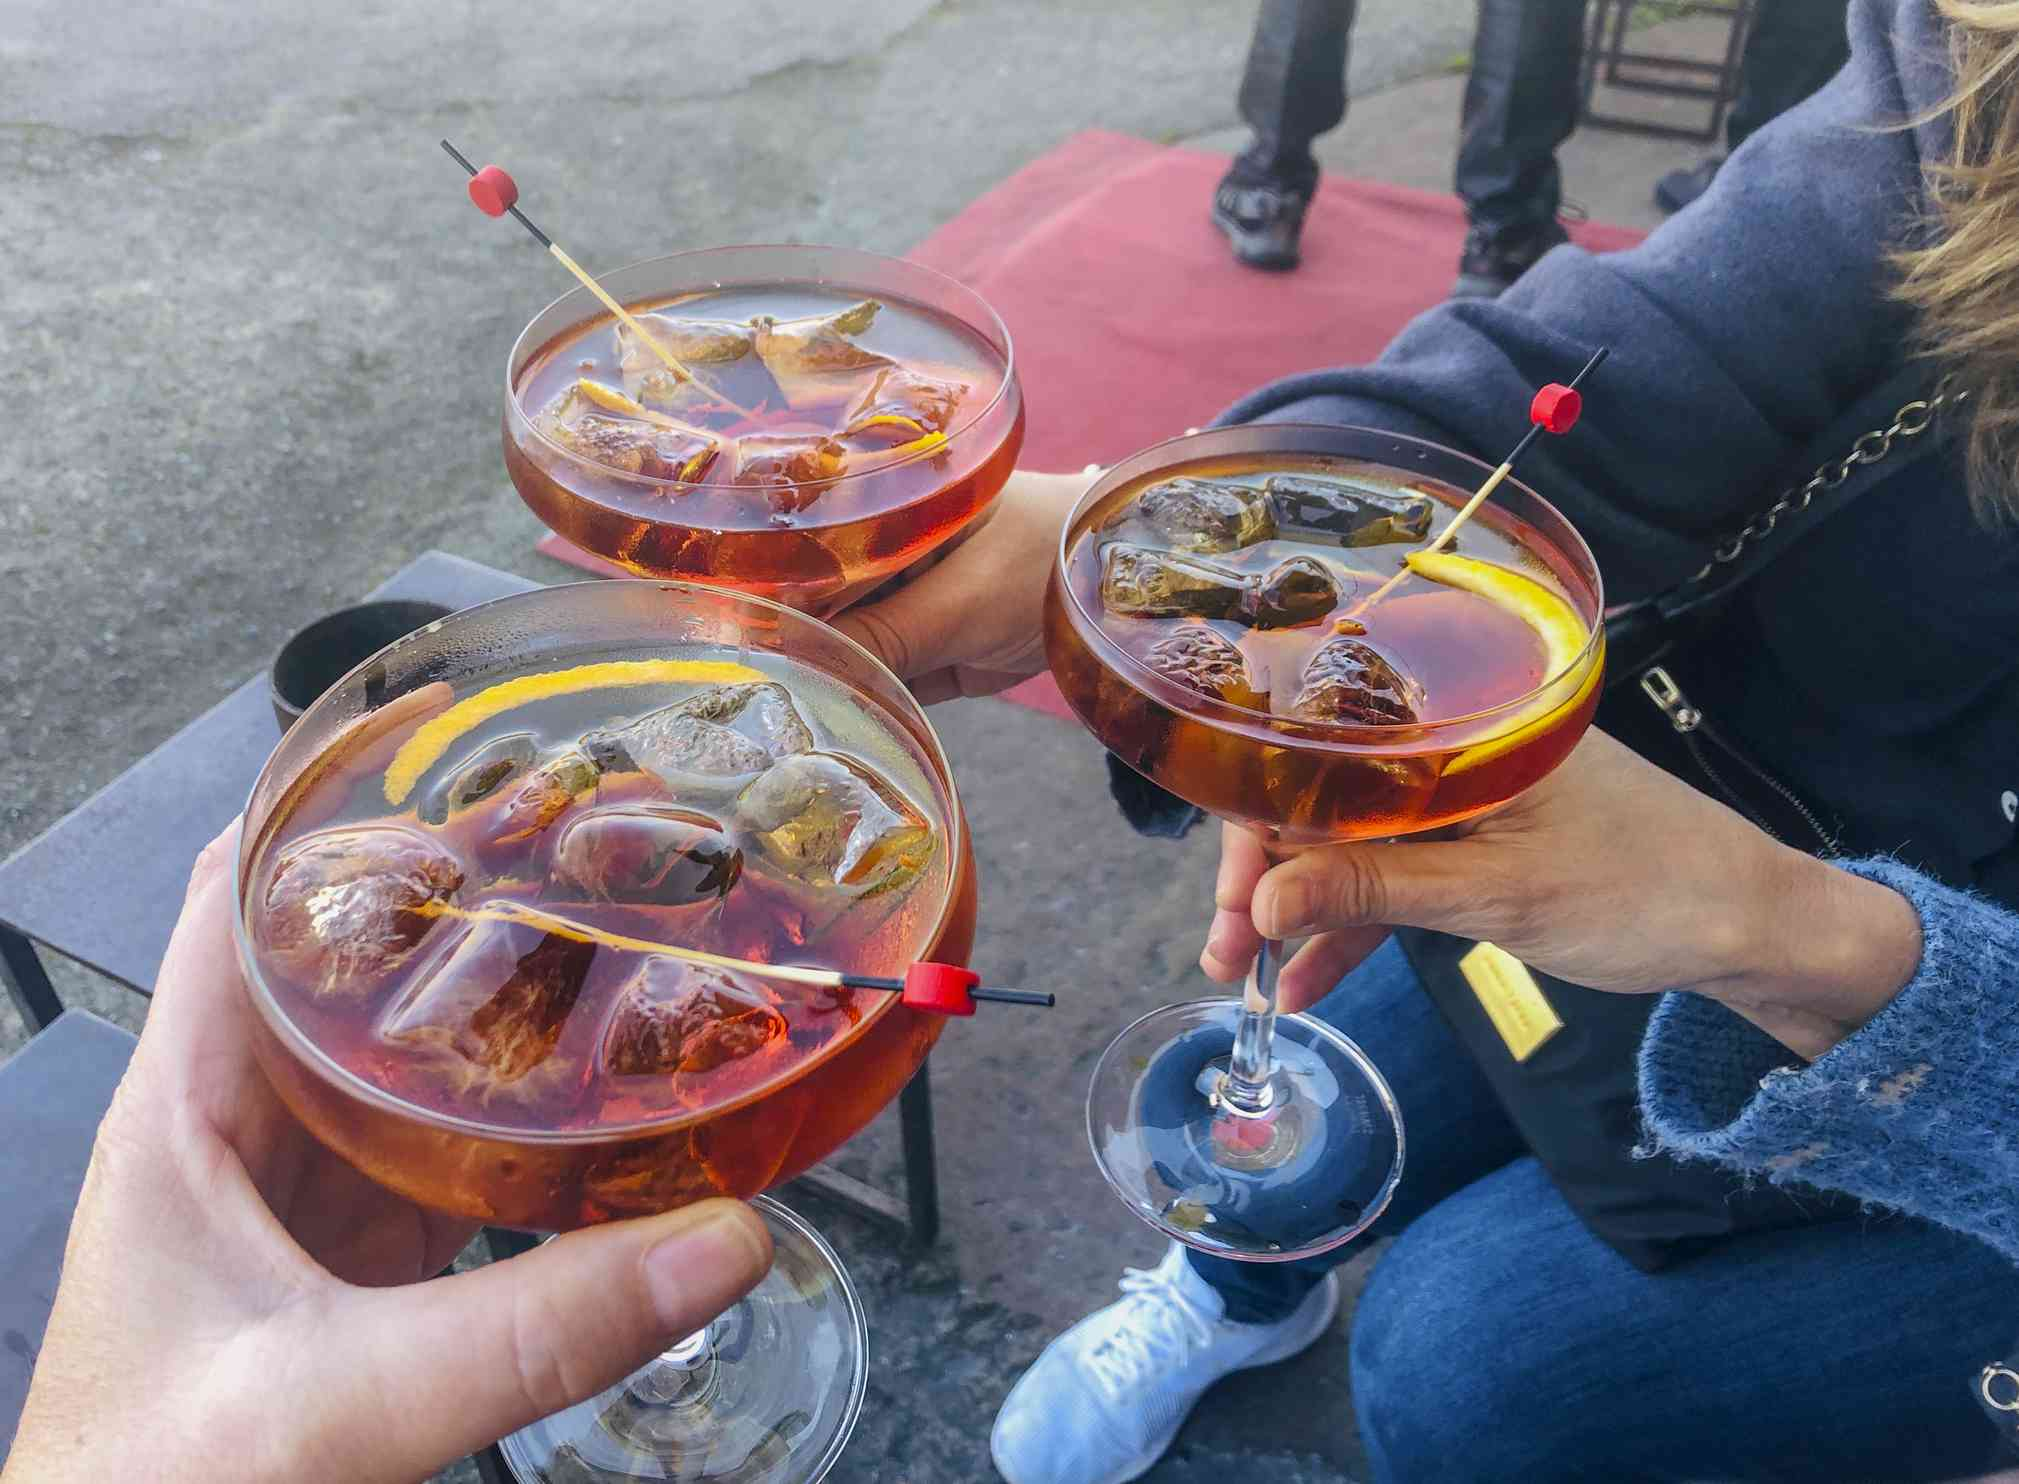 Three vermouths among friends in Spain